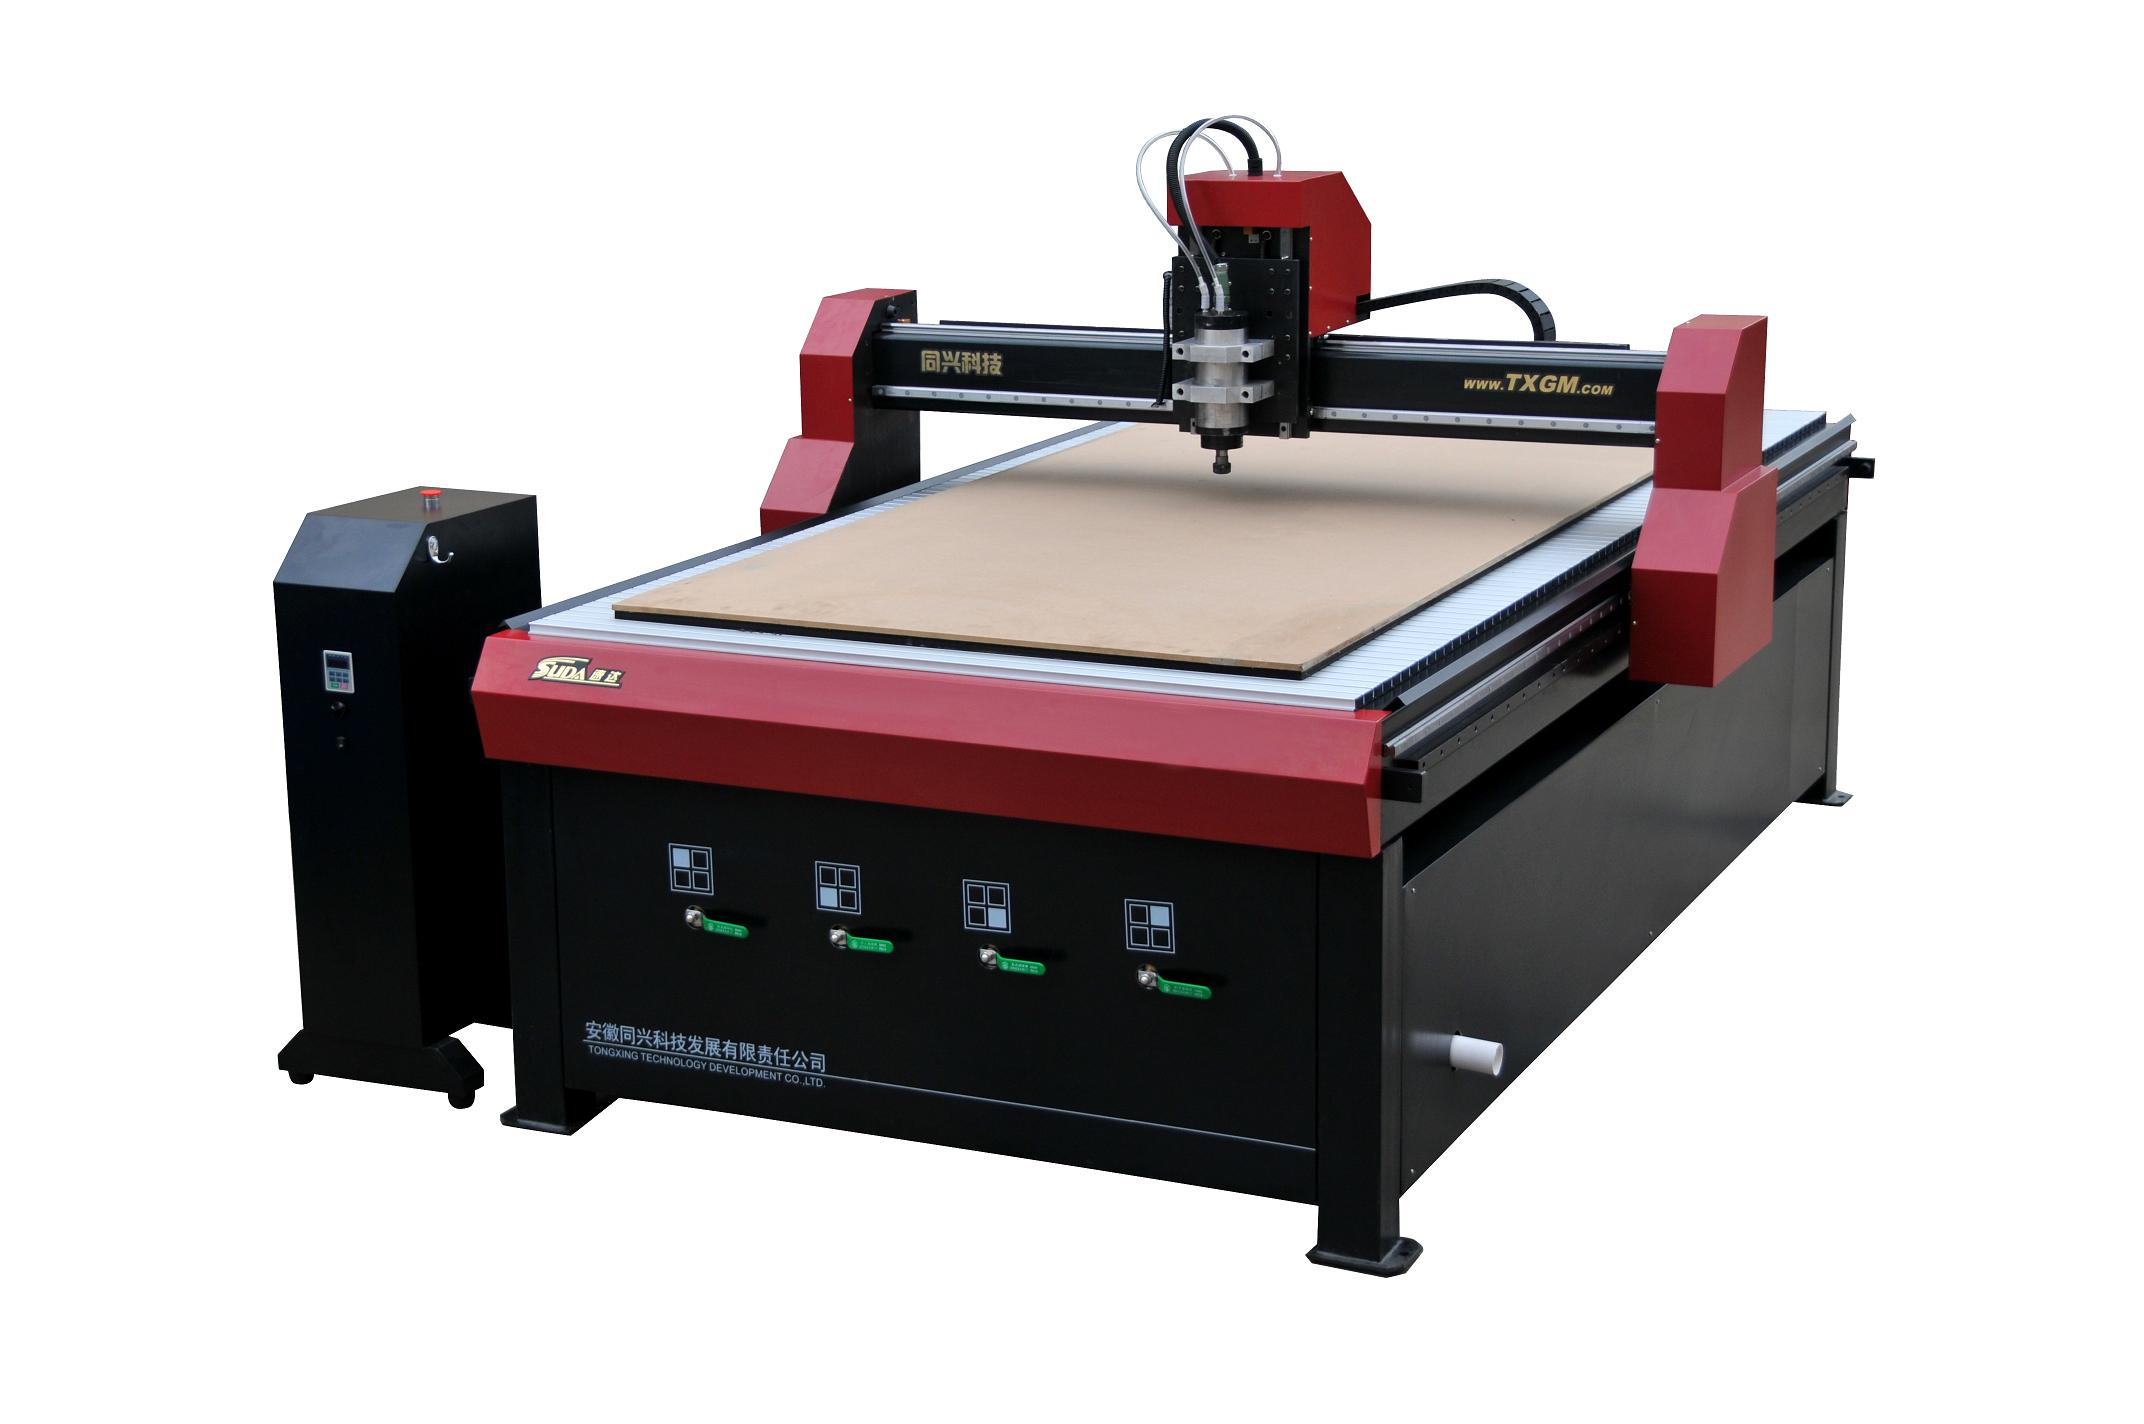 Suda Engraving Machine Manufacturer inDindigul Tamil Nadu India by Cncmathatech | ID - 1402918